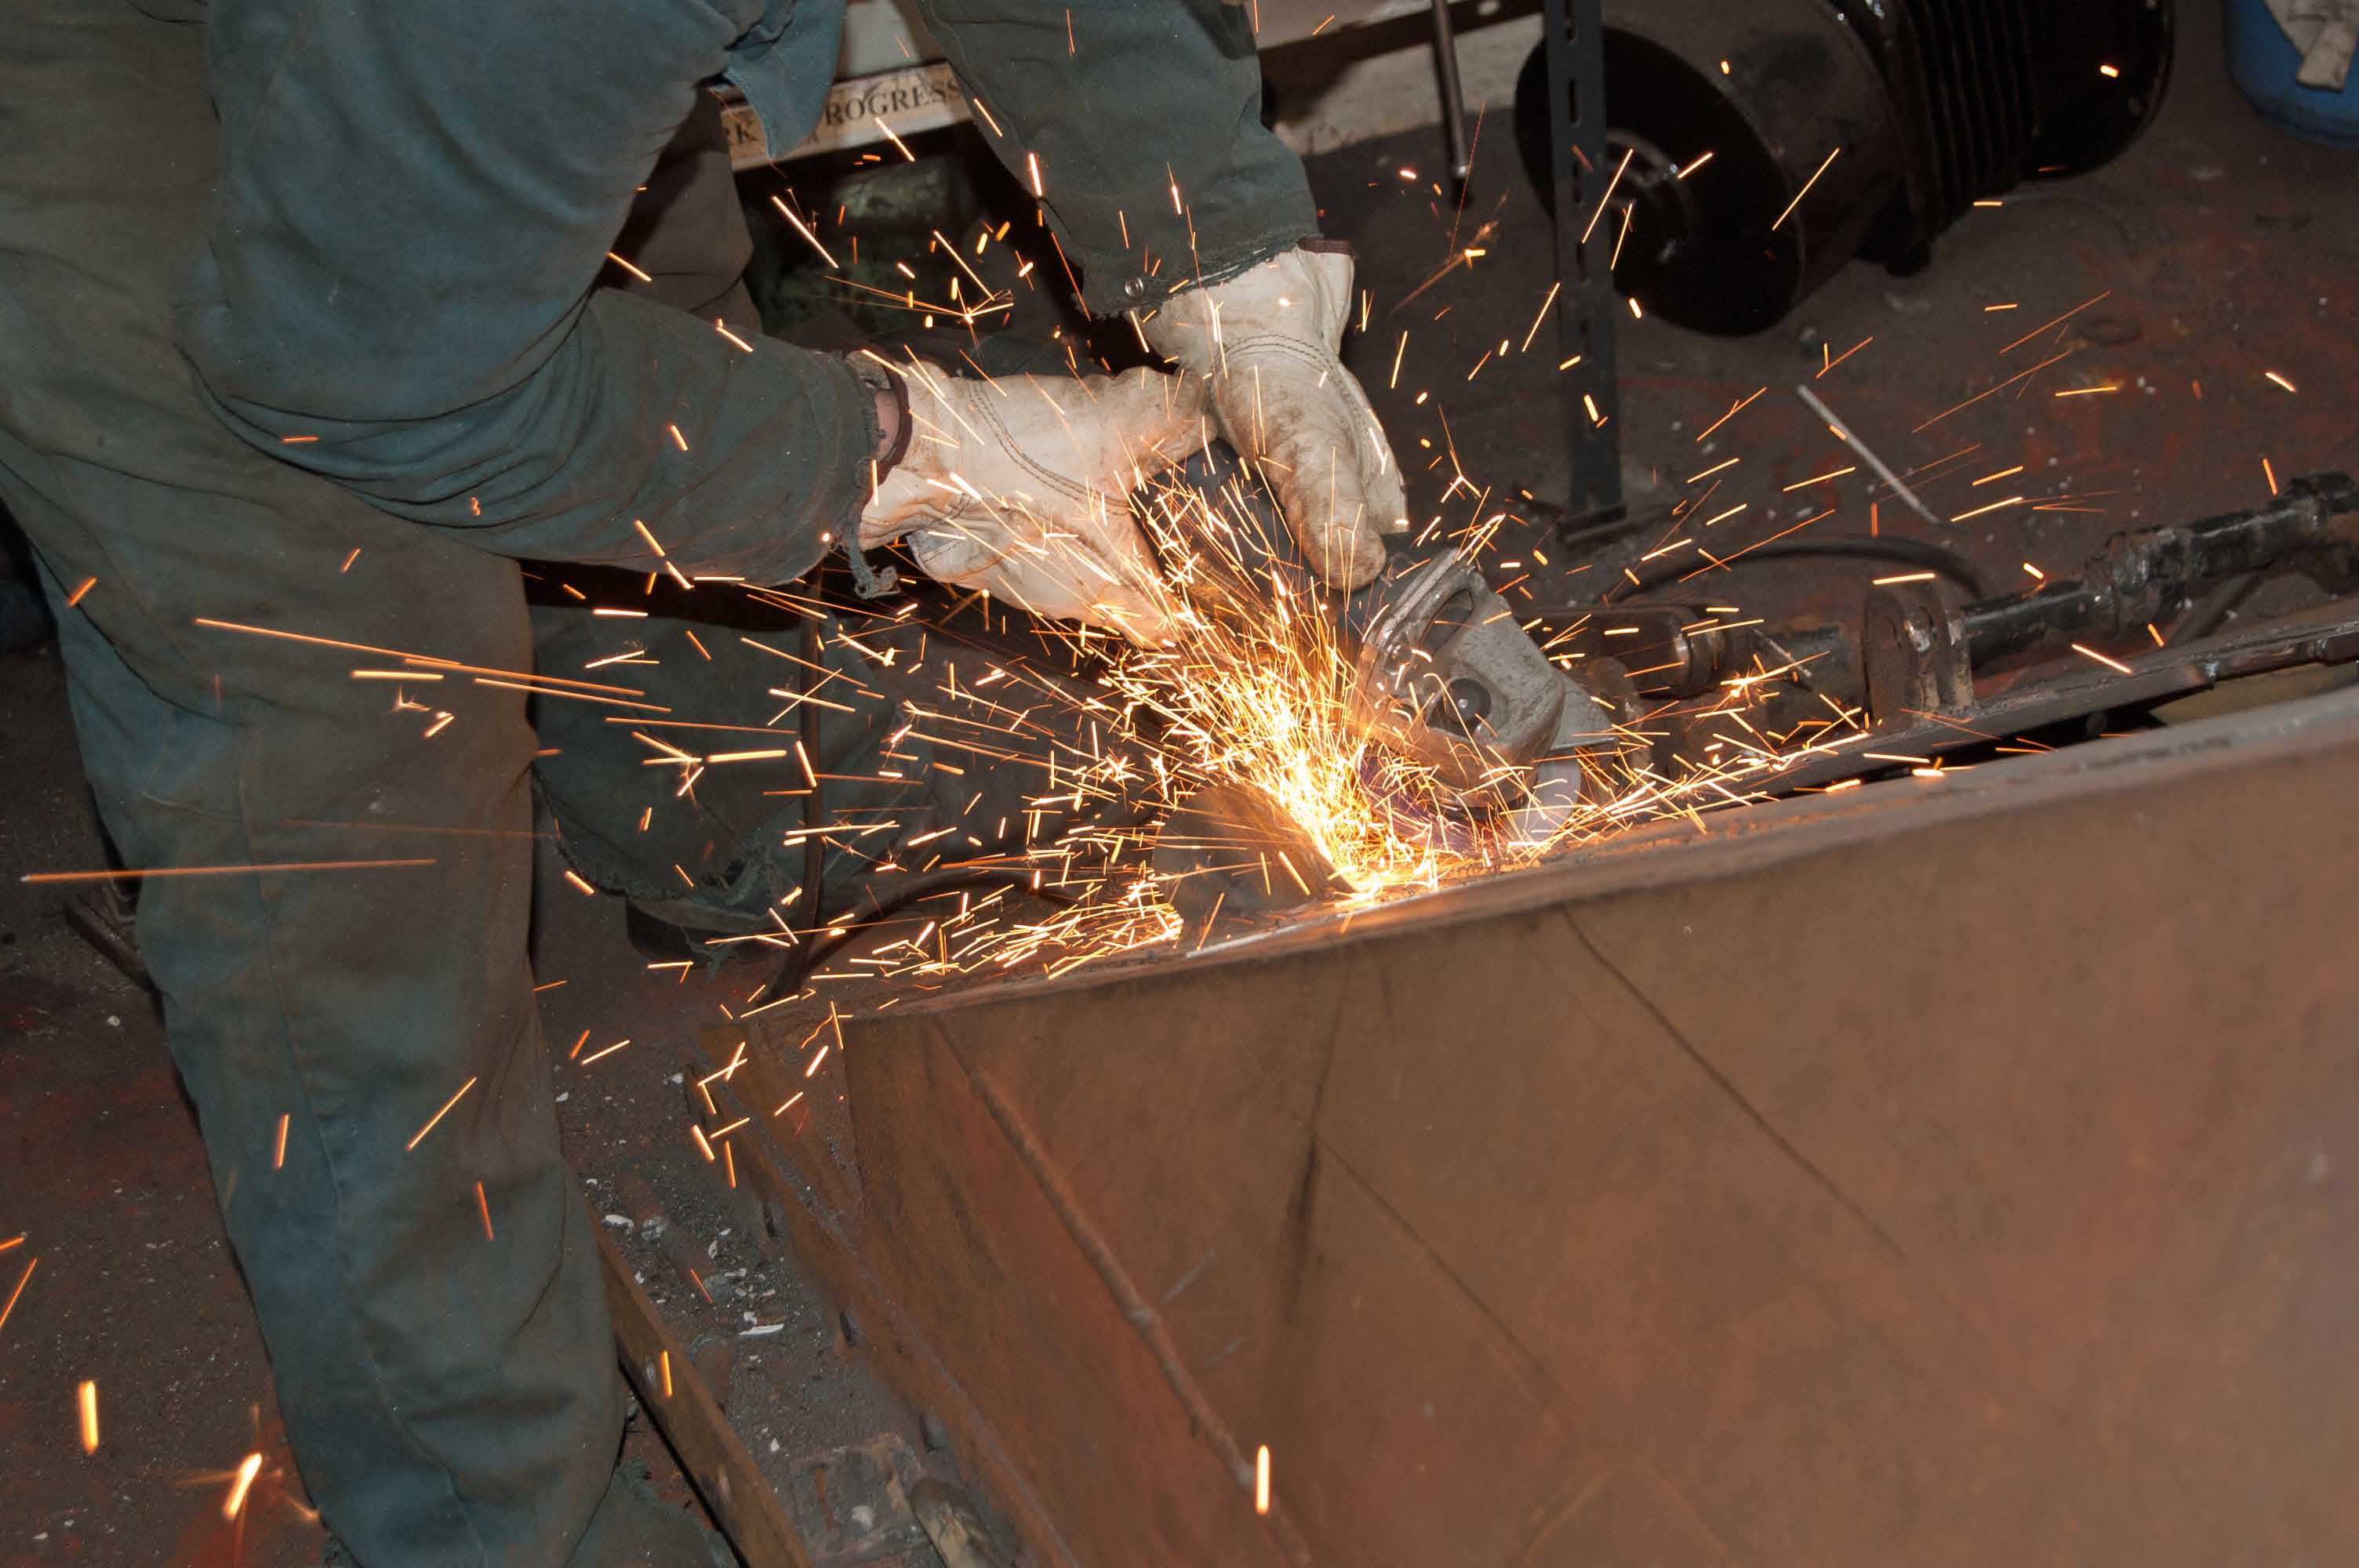 A lot of work with an angle grinder is needed before and after welding